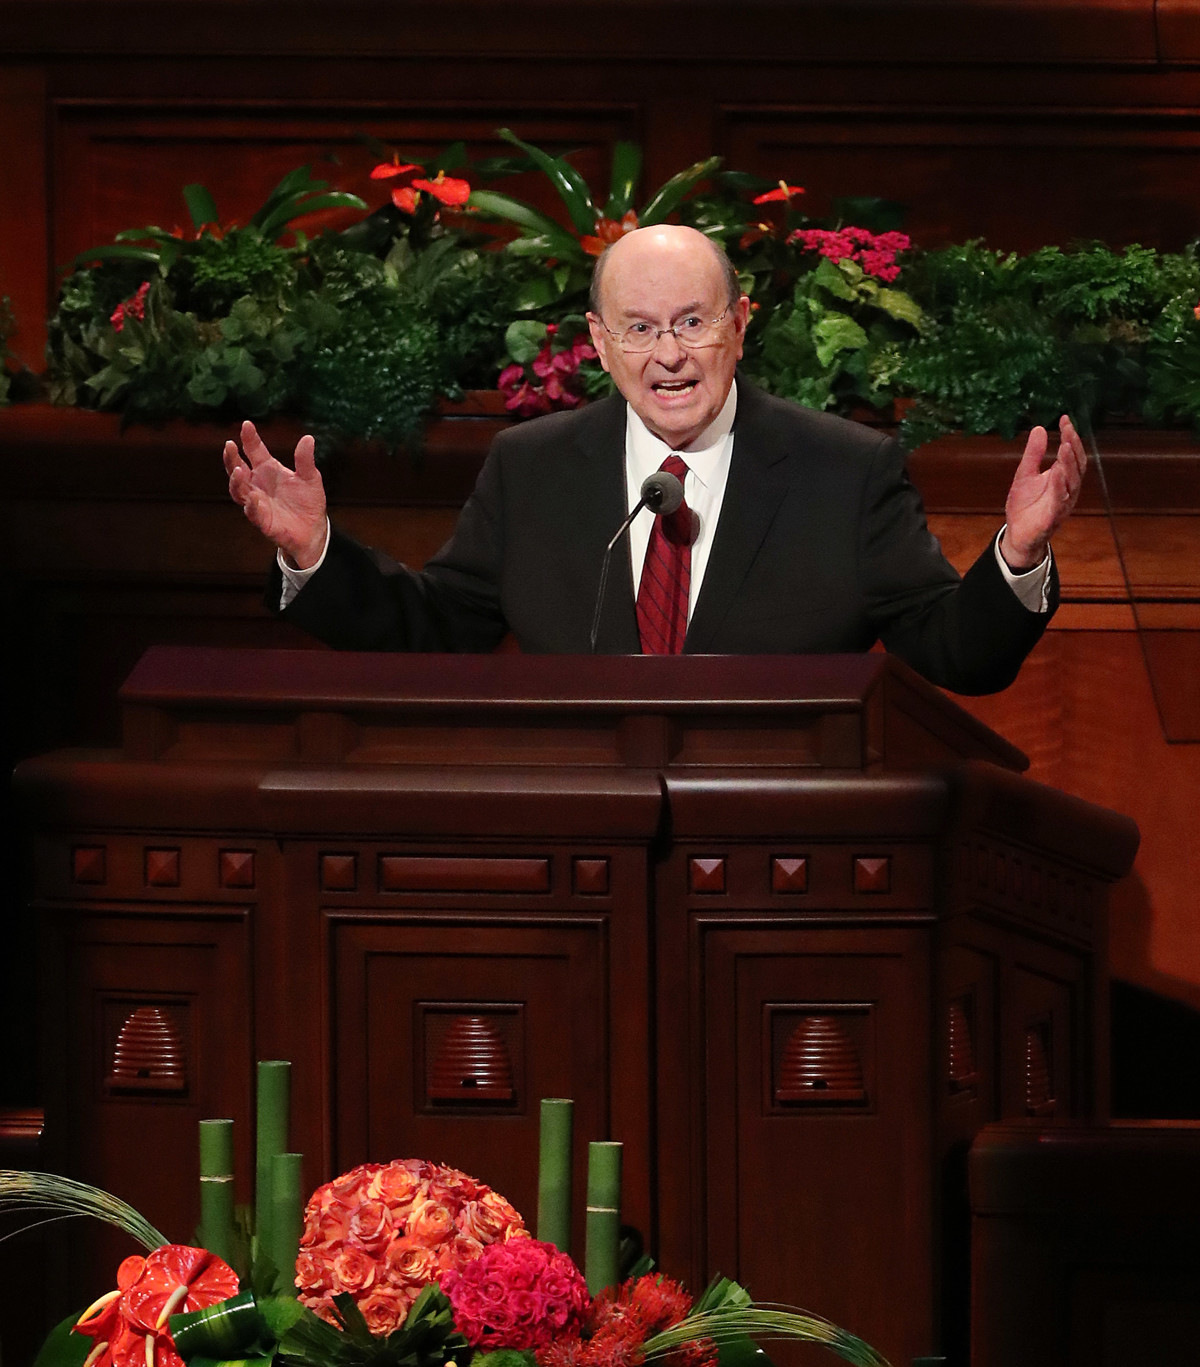 Lds Primary Sharing Time 2020 May Lesson Ideas 6 things you may be wondering about the new Sunday worship